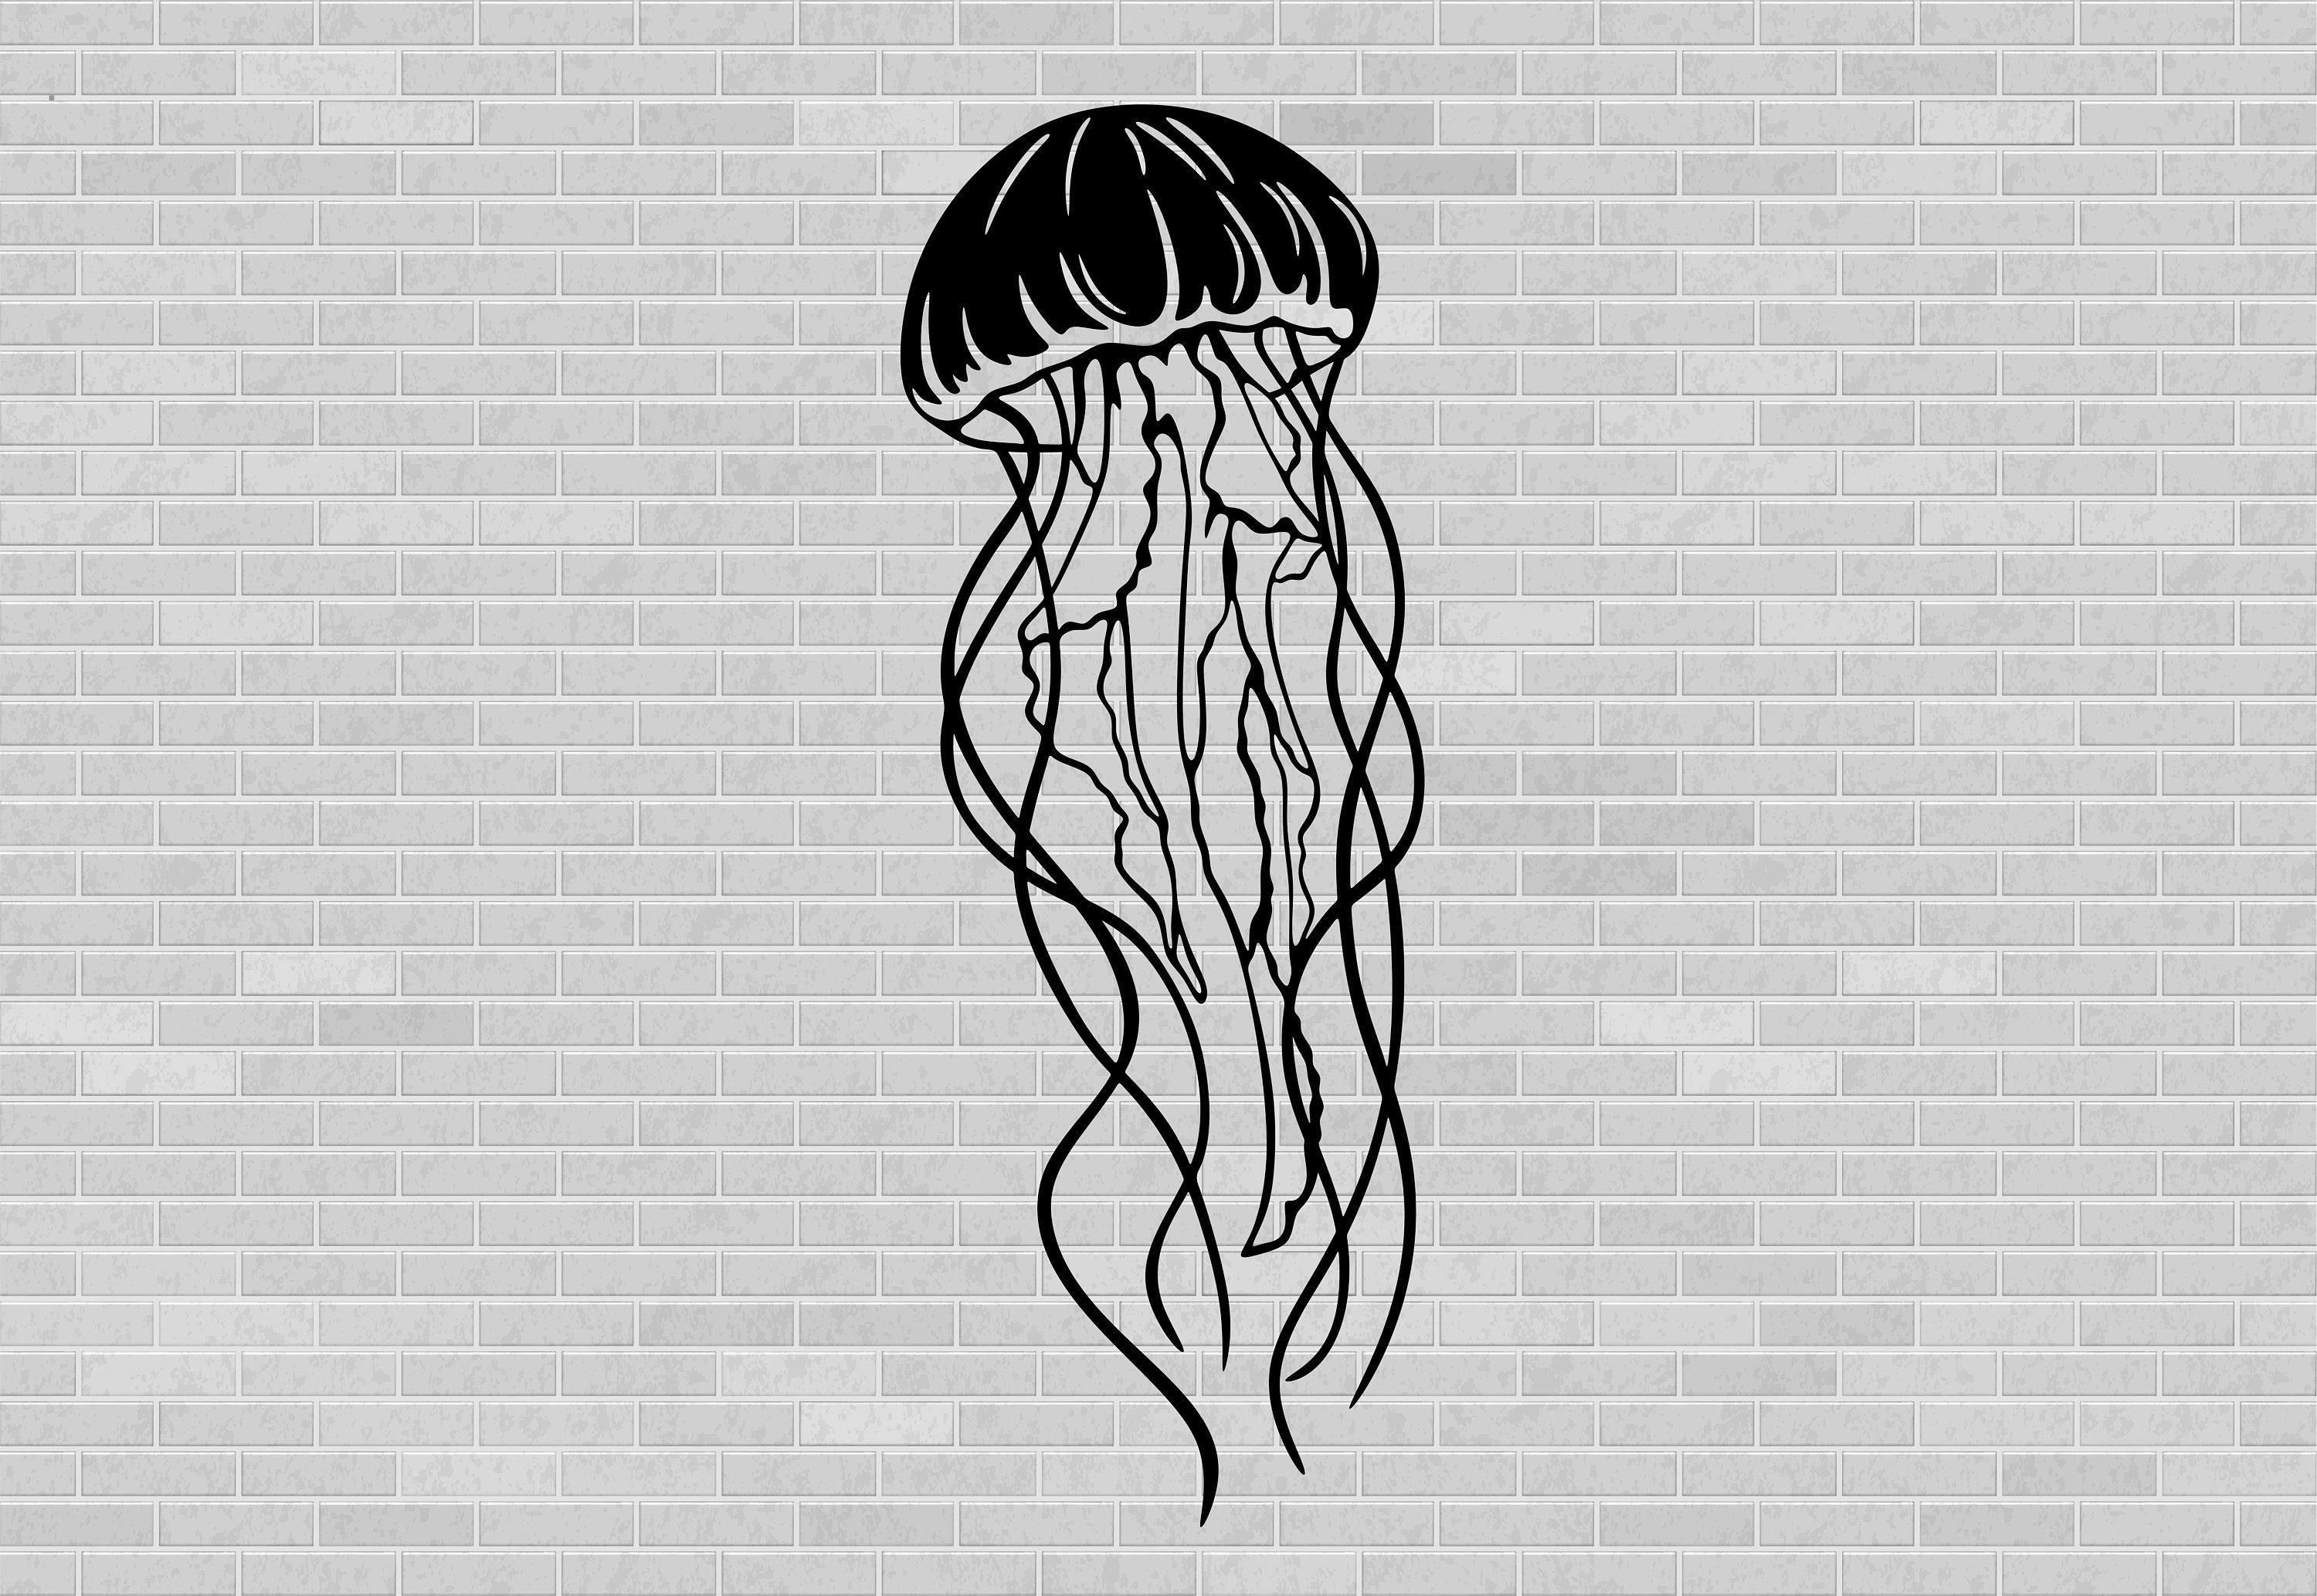 Jellyfish Svg Jellyfish Clipart Png File Dxf Files For Cnc Etsy In 2020 Jellyfish Design Jellyfish Print Jellyfish Light